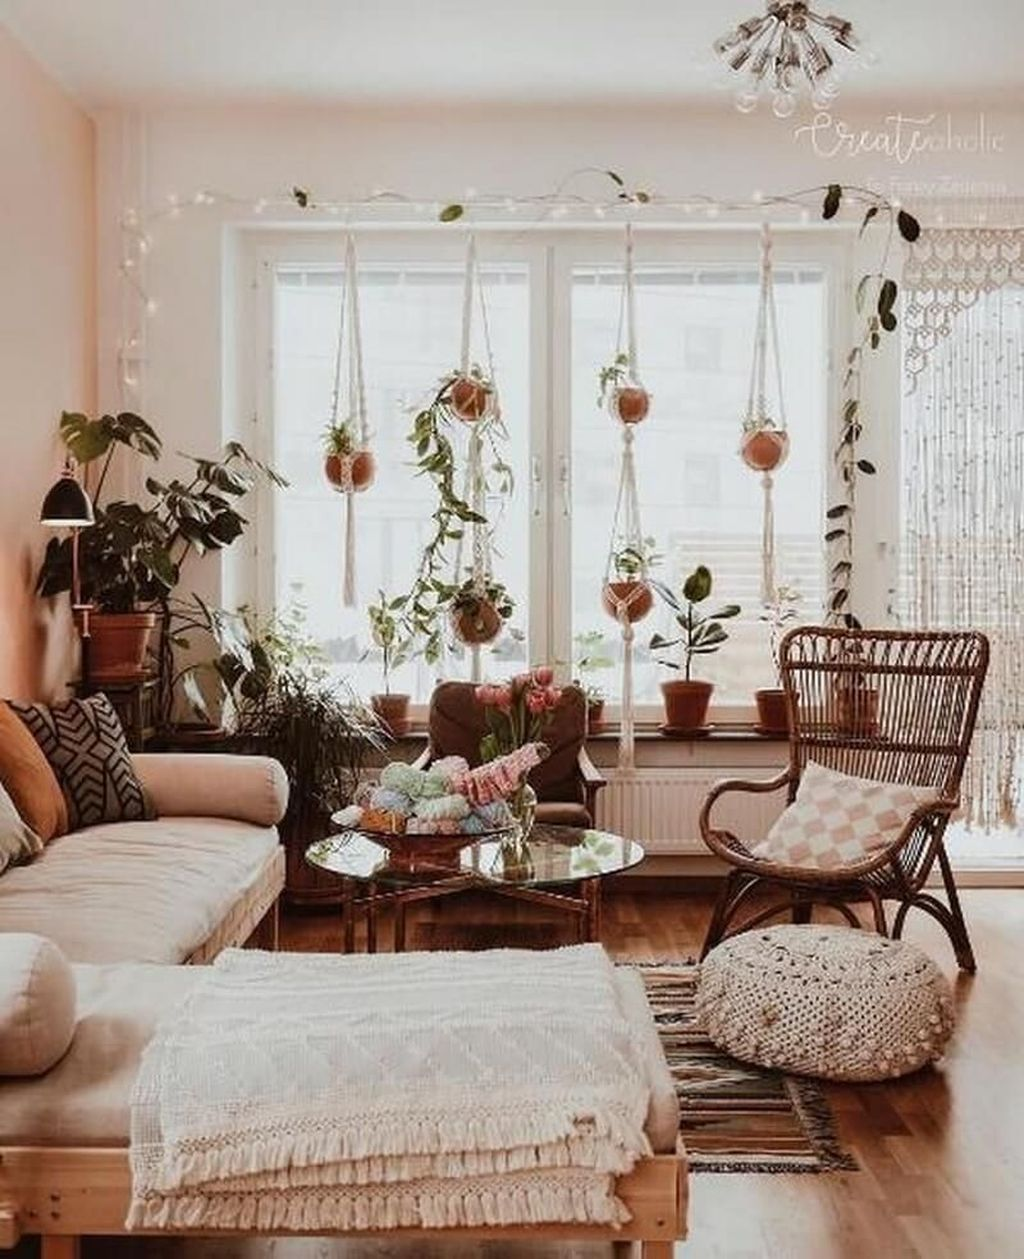 Lovely Boho Chic Apartment Decor Ideas Domashnij Dekor Dizajn Doma Interer